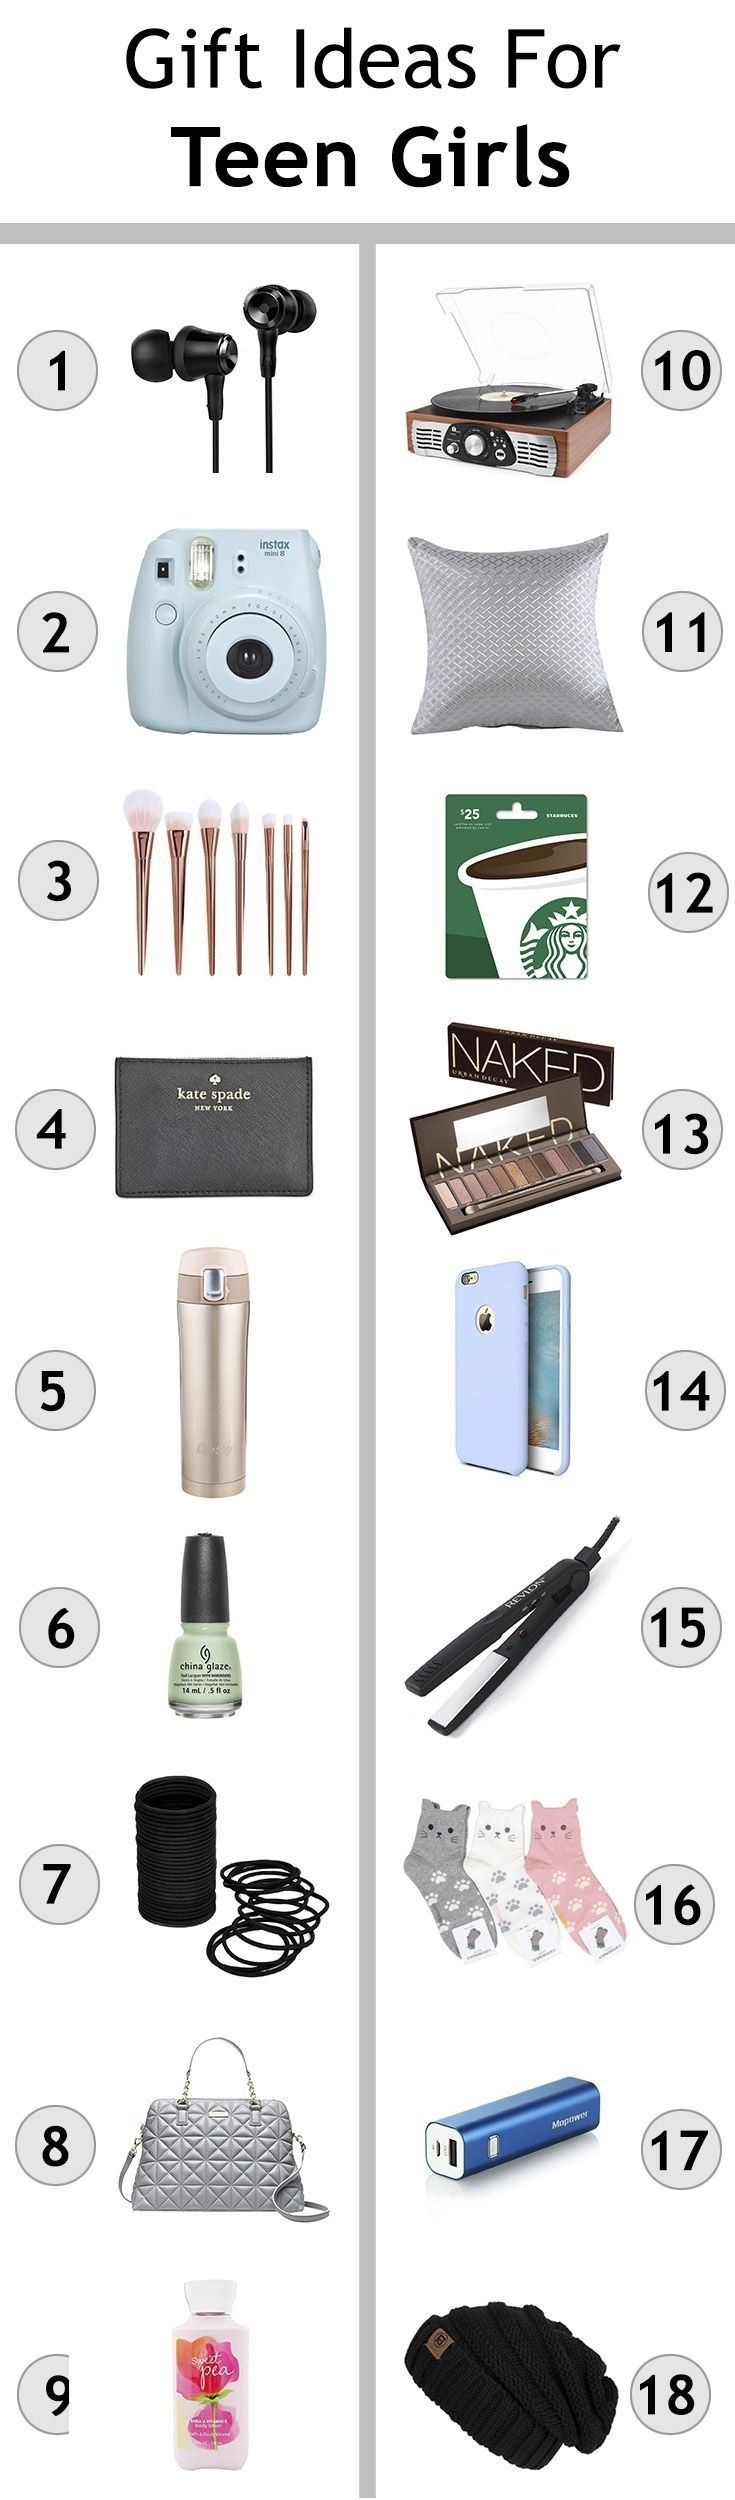 10 Awesome Gift Ideas For Teenage Girls gift ideas for teen girls christmas shopping for teengers teen 5